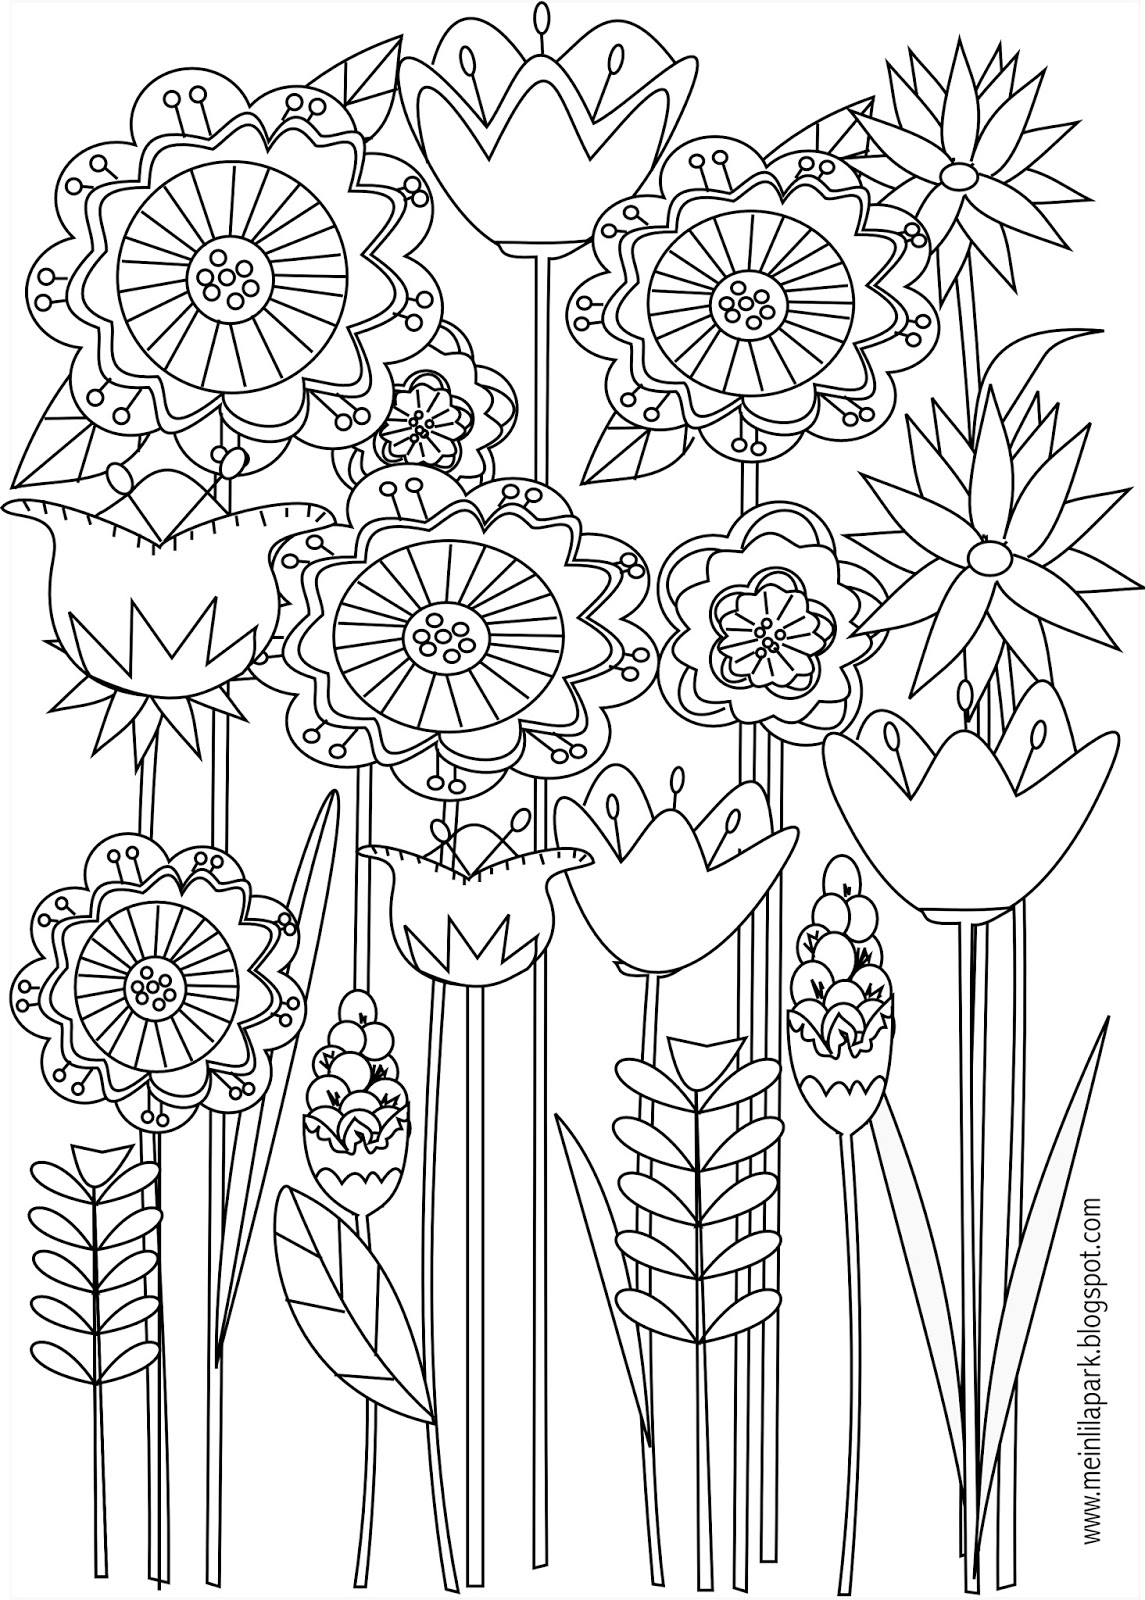 coloring pages flowers printable free printable floral coloring page ausdruckbare coloring pages printable flowers